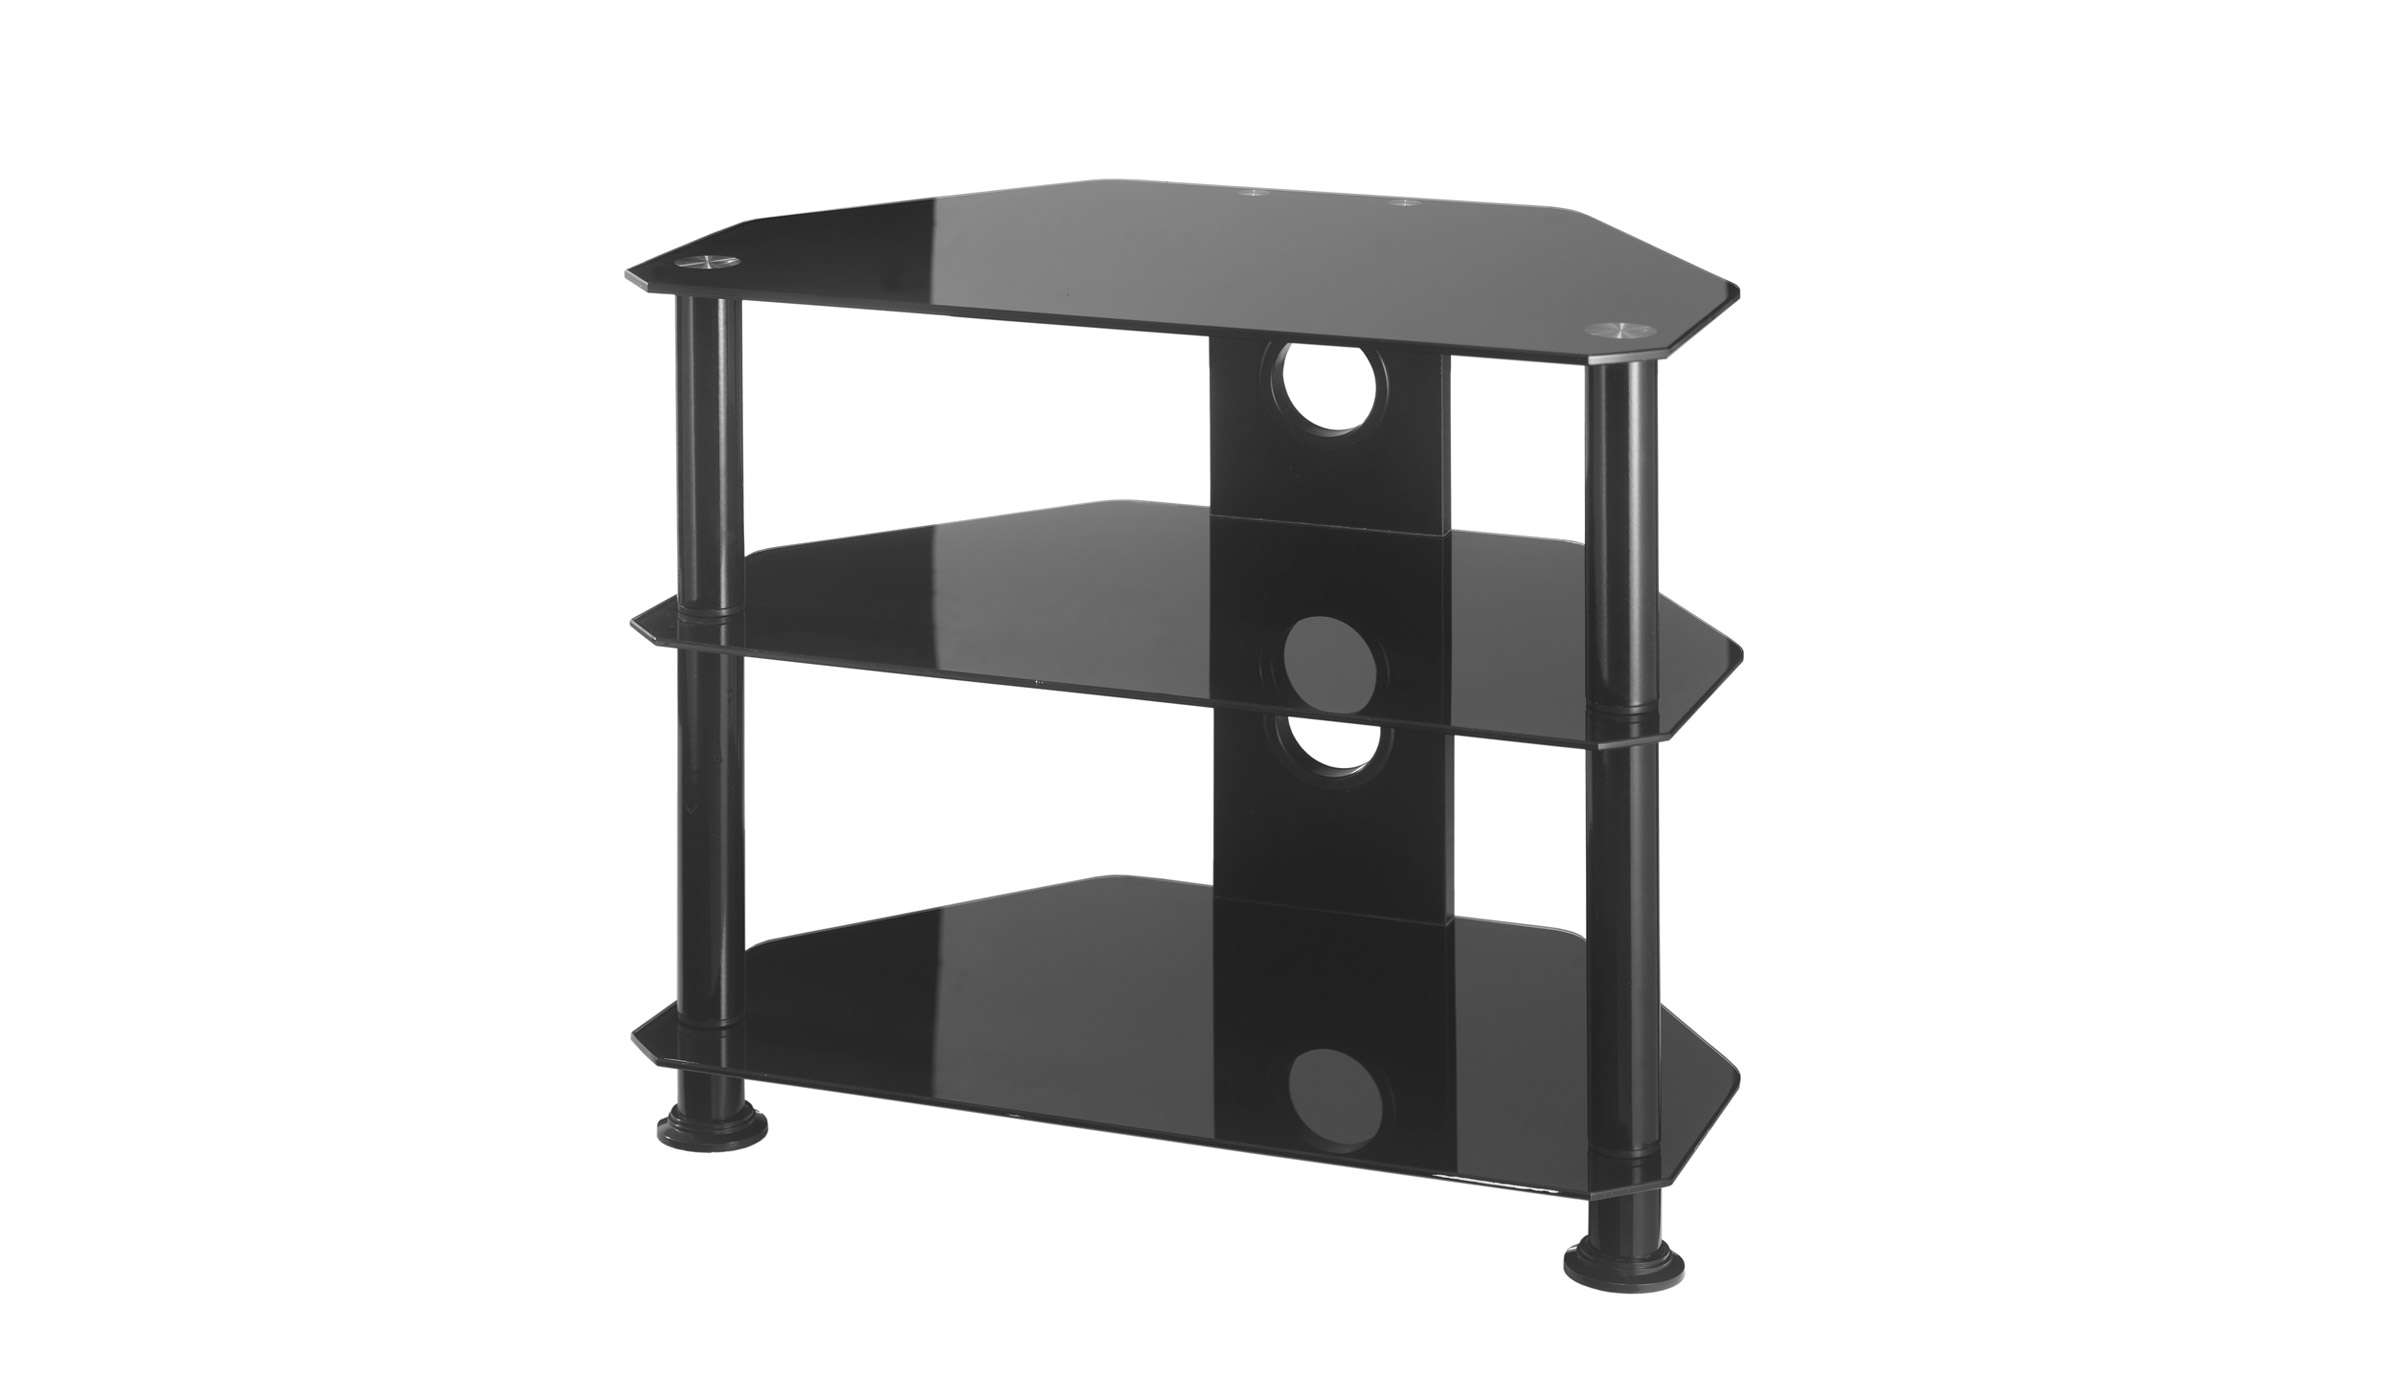 Small Glass Corner Tv Stand Up To 26 Inch Tv | Mmt Db600 Pertaining To Small Corner Tv Cabinets (View 17 of 20)